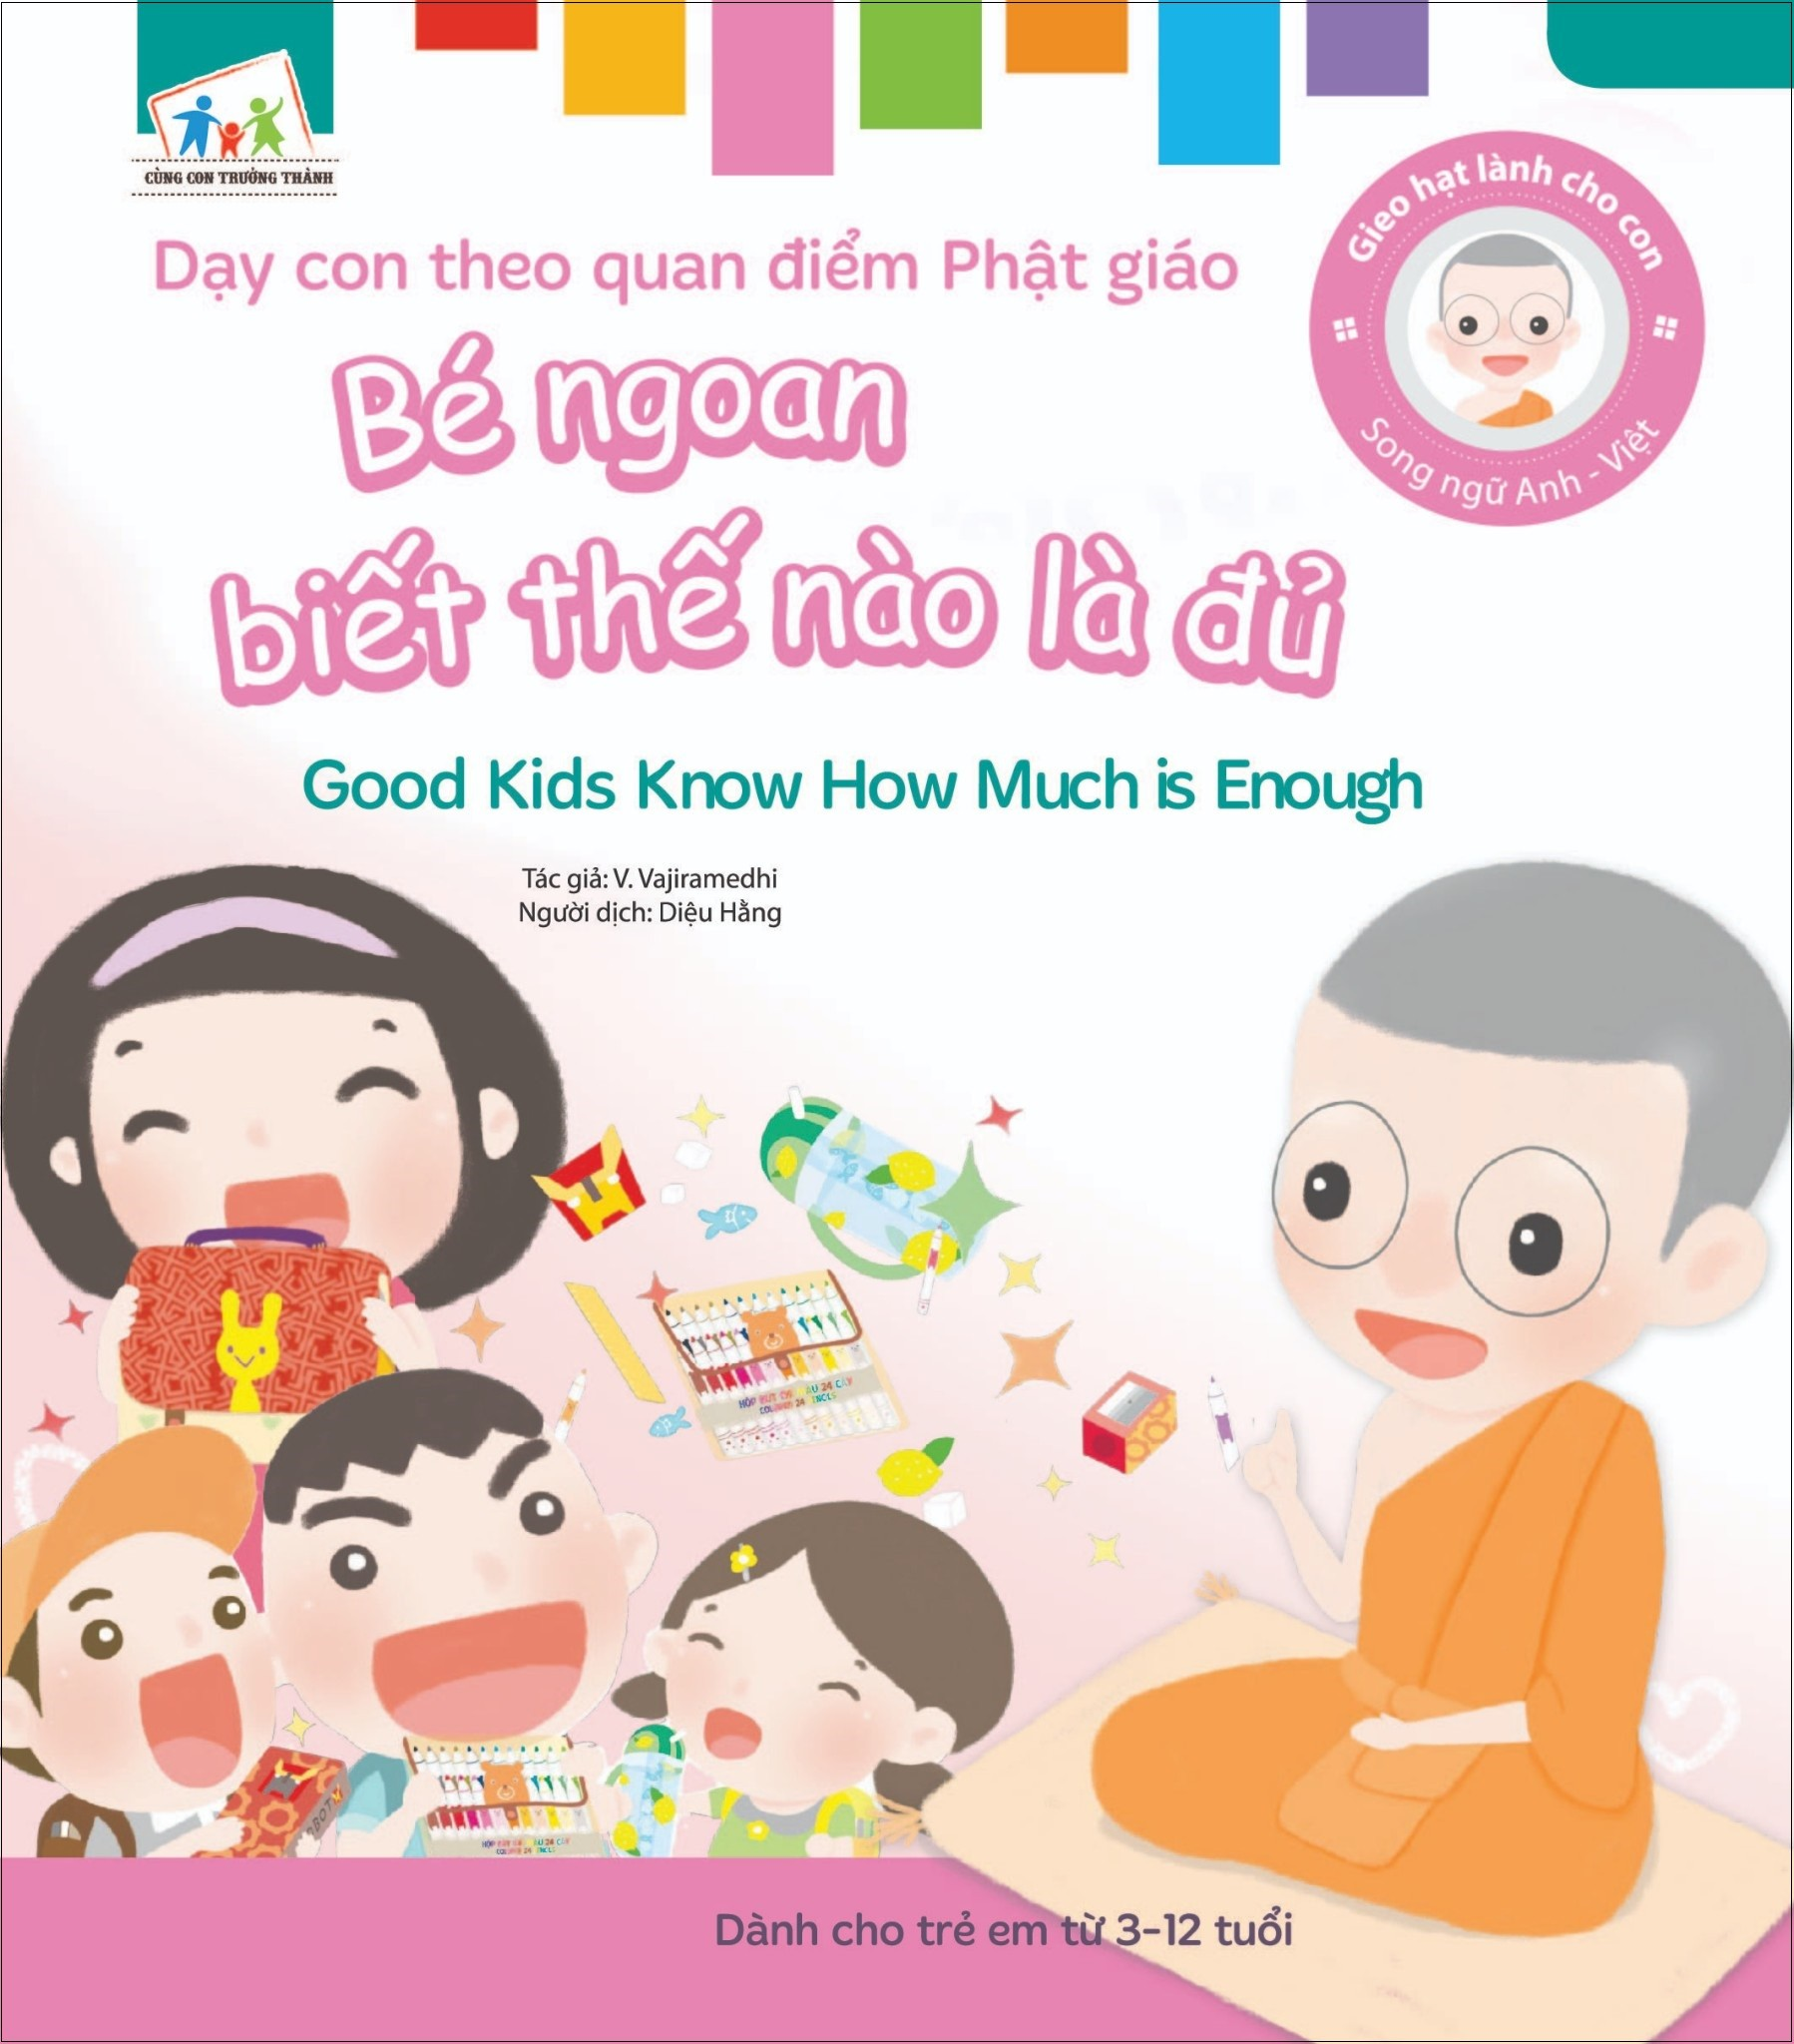 gieo hat lanh cho con - day con theo quan diem phat giao - good kids know how much is enough - be ngoan biet the nao la du (song ngu anh viet)